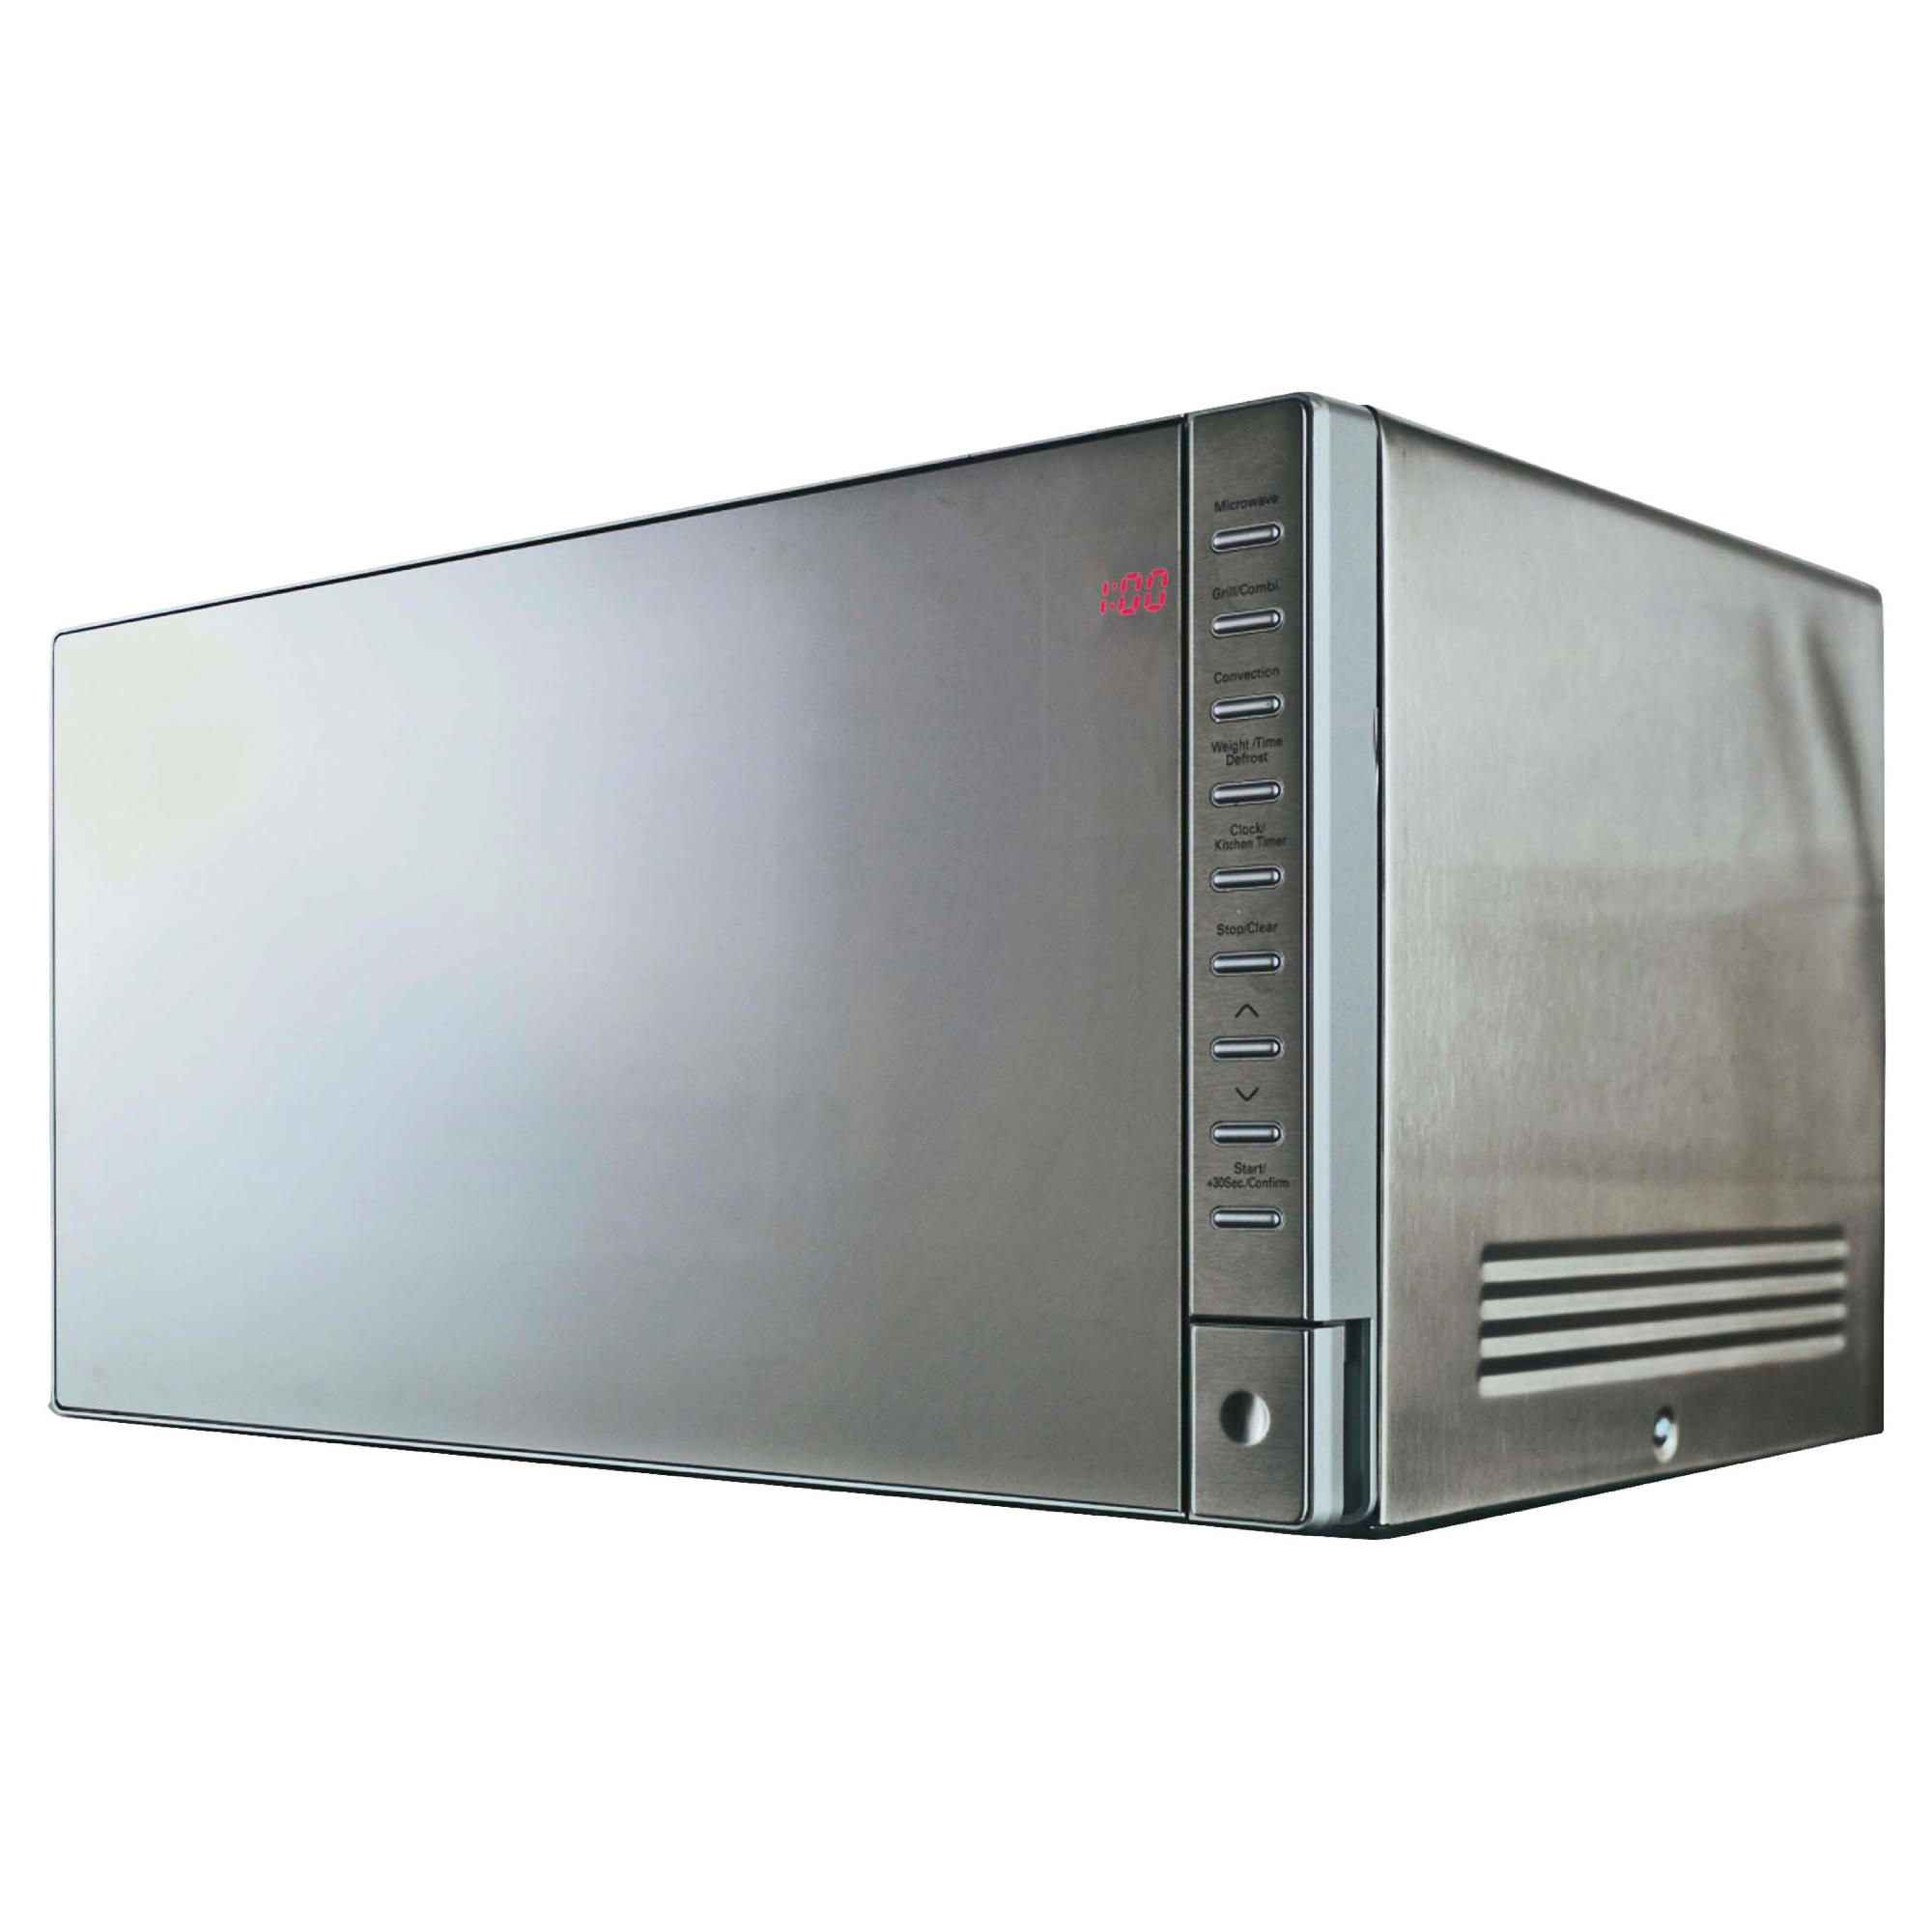 Countertop Microwave Grill Convection Oven : ... Tfmc2512 25L 900W CoMBination Microwave With Grill & Convection Oven